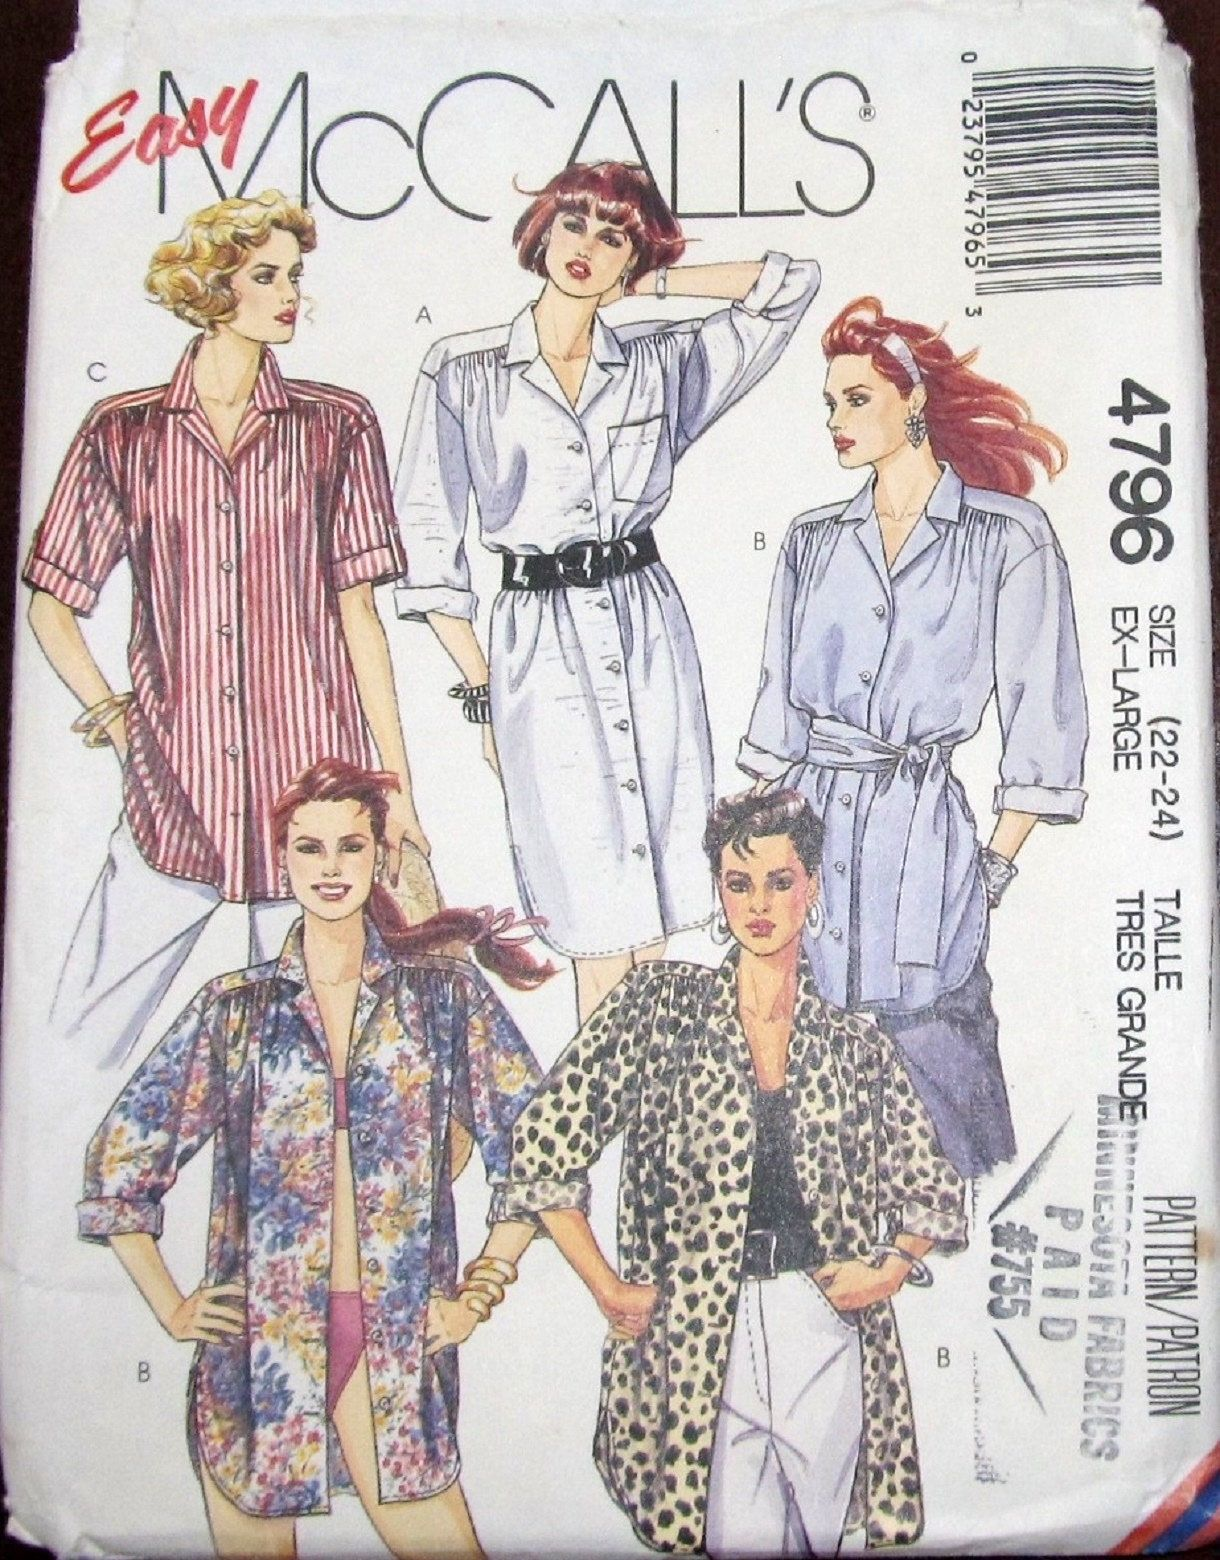 956834b910ac79 Easy Vintage Sewing Pattern McCall's 4796 Shirtdress Dress, Camp Shirt Tie  Belt Womens Misses Plus Size 22-24 Bust 44-46 Uncut Factory Folds by ...